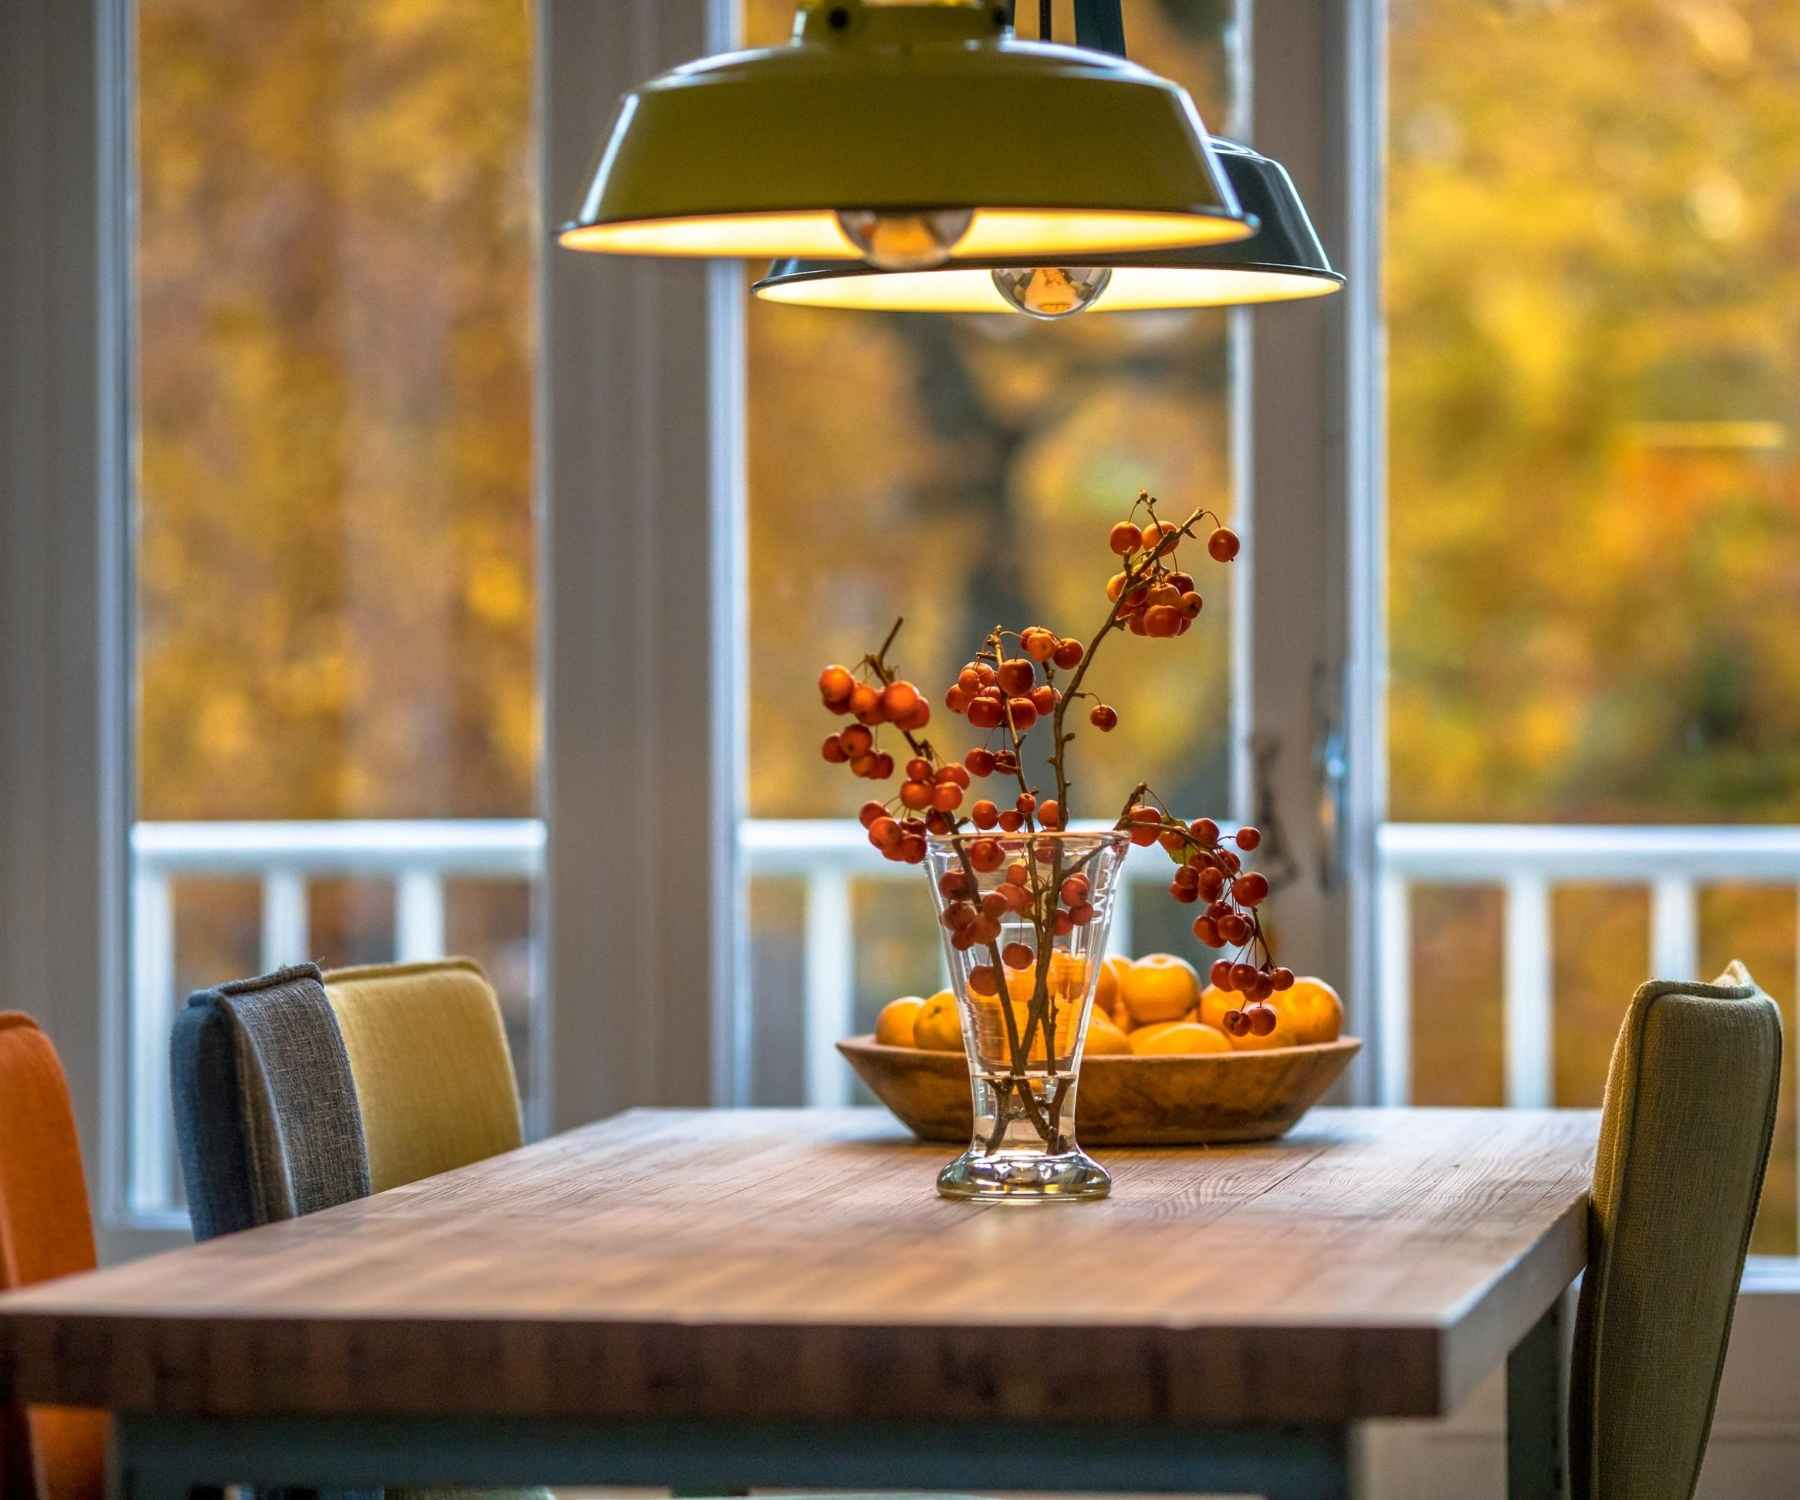 Wooden dining table with green pendant lighting and autumn berries